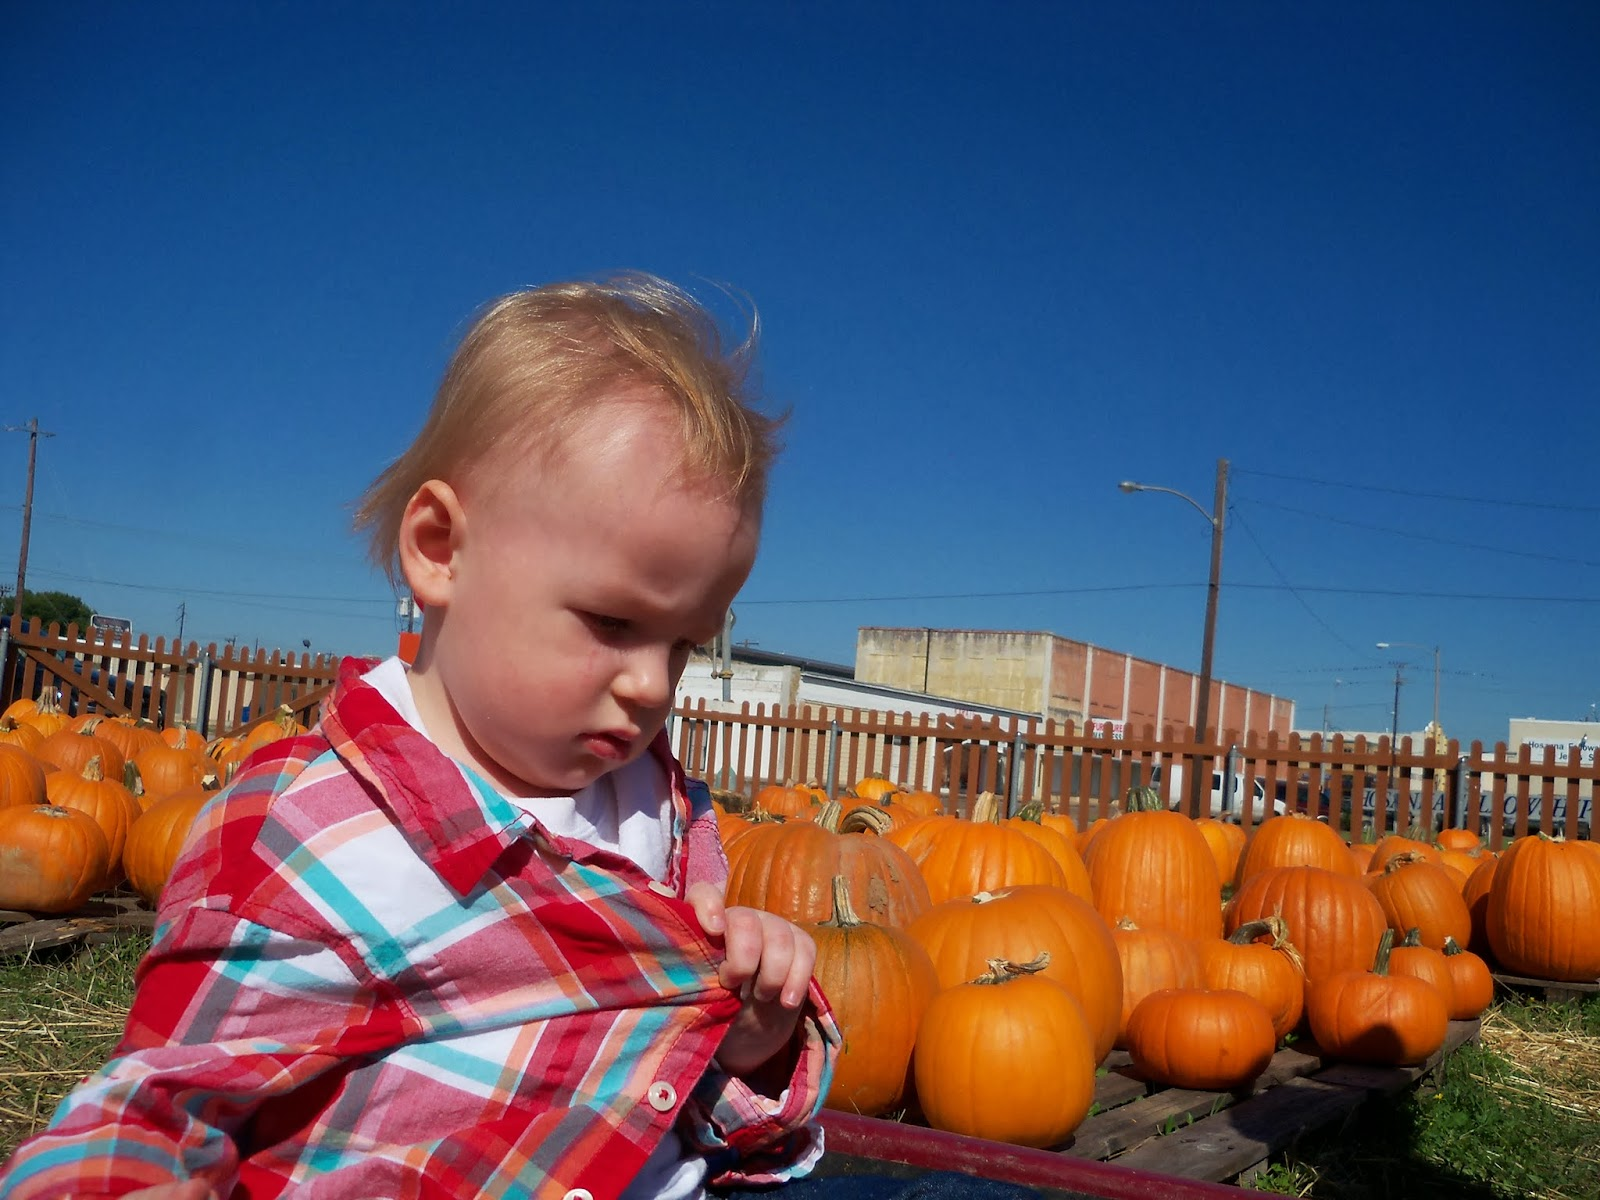 Pumpkin Patch - 115_8264.JPG